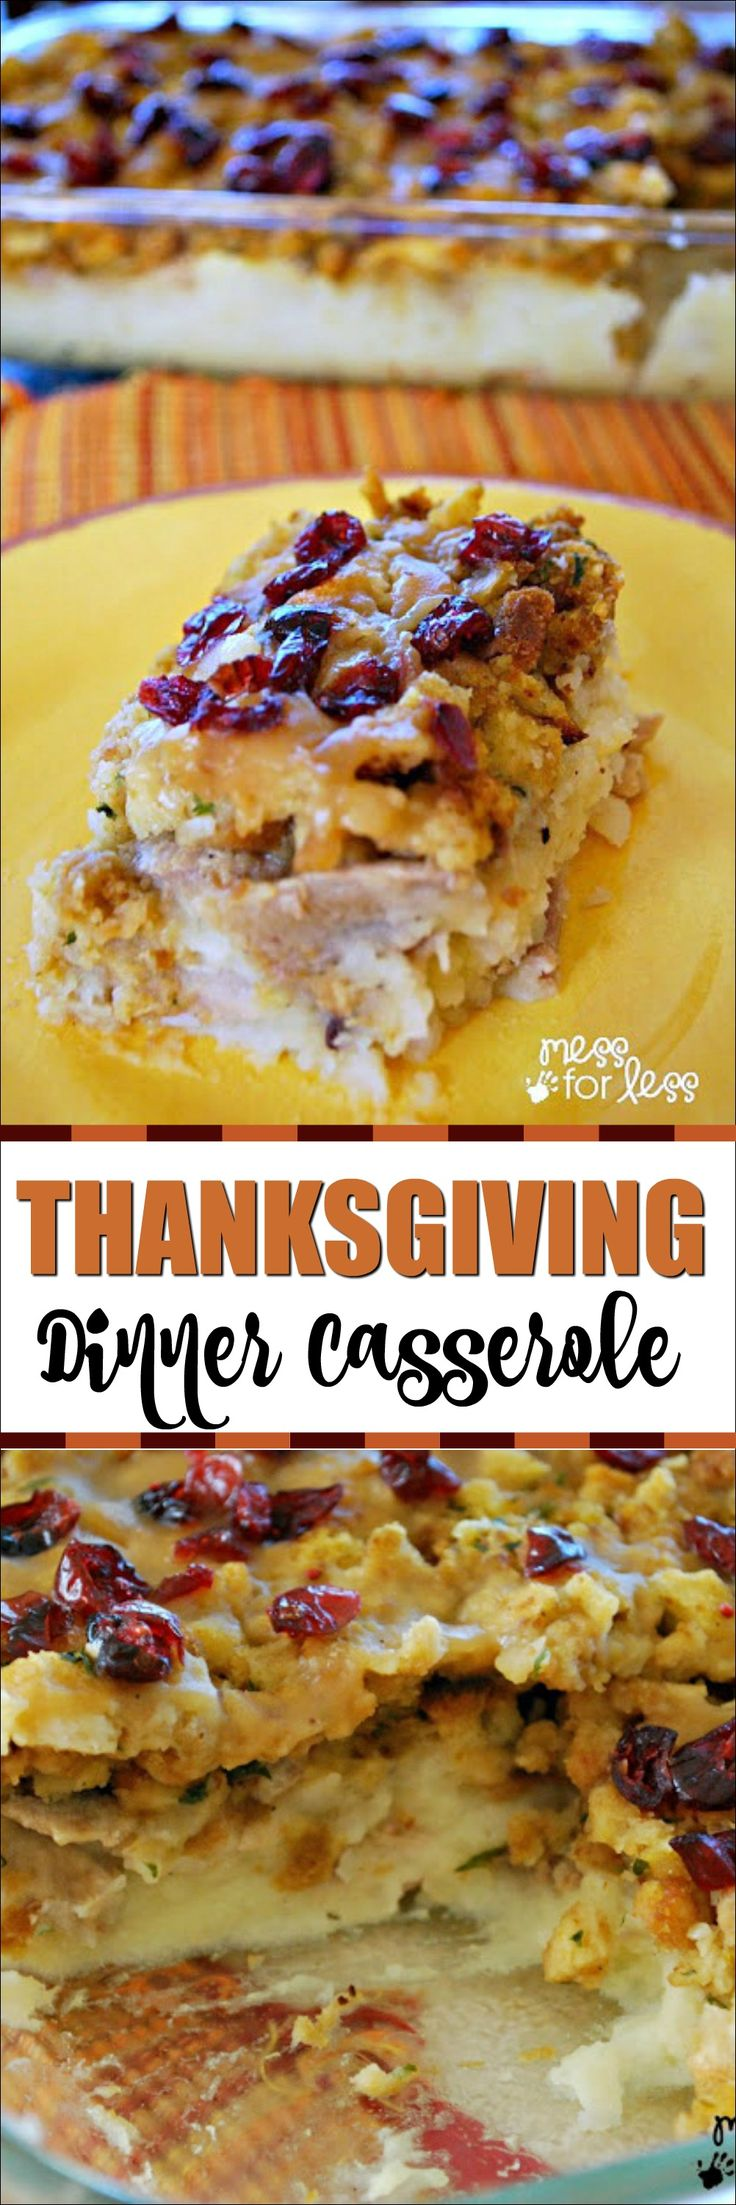 1627 best comfort food recipes images on pinterest cooking recipes thanksgiving dinner casserole this turkey and stuffing casserole combines your favorite thanksgiving flavors in an casserole dishesstuffing forumfinder Choice Image